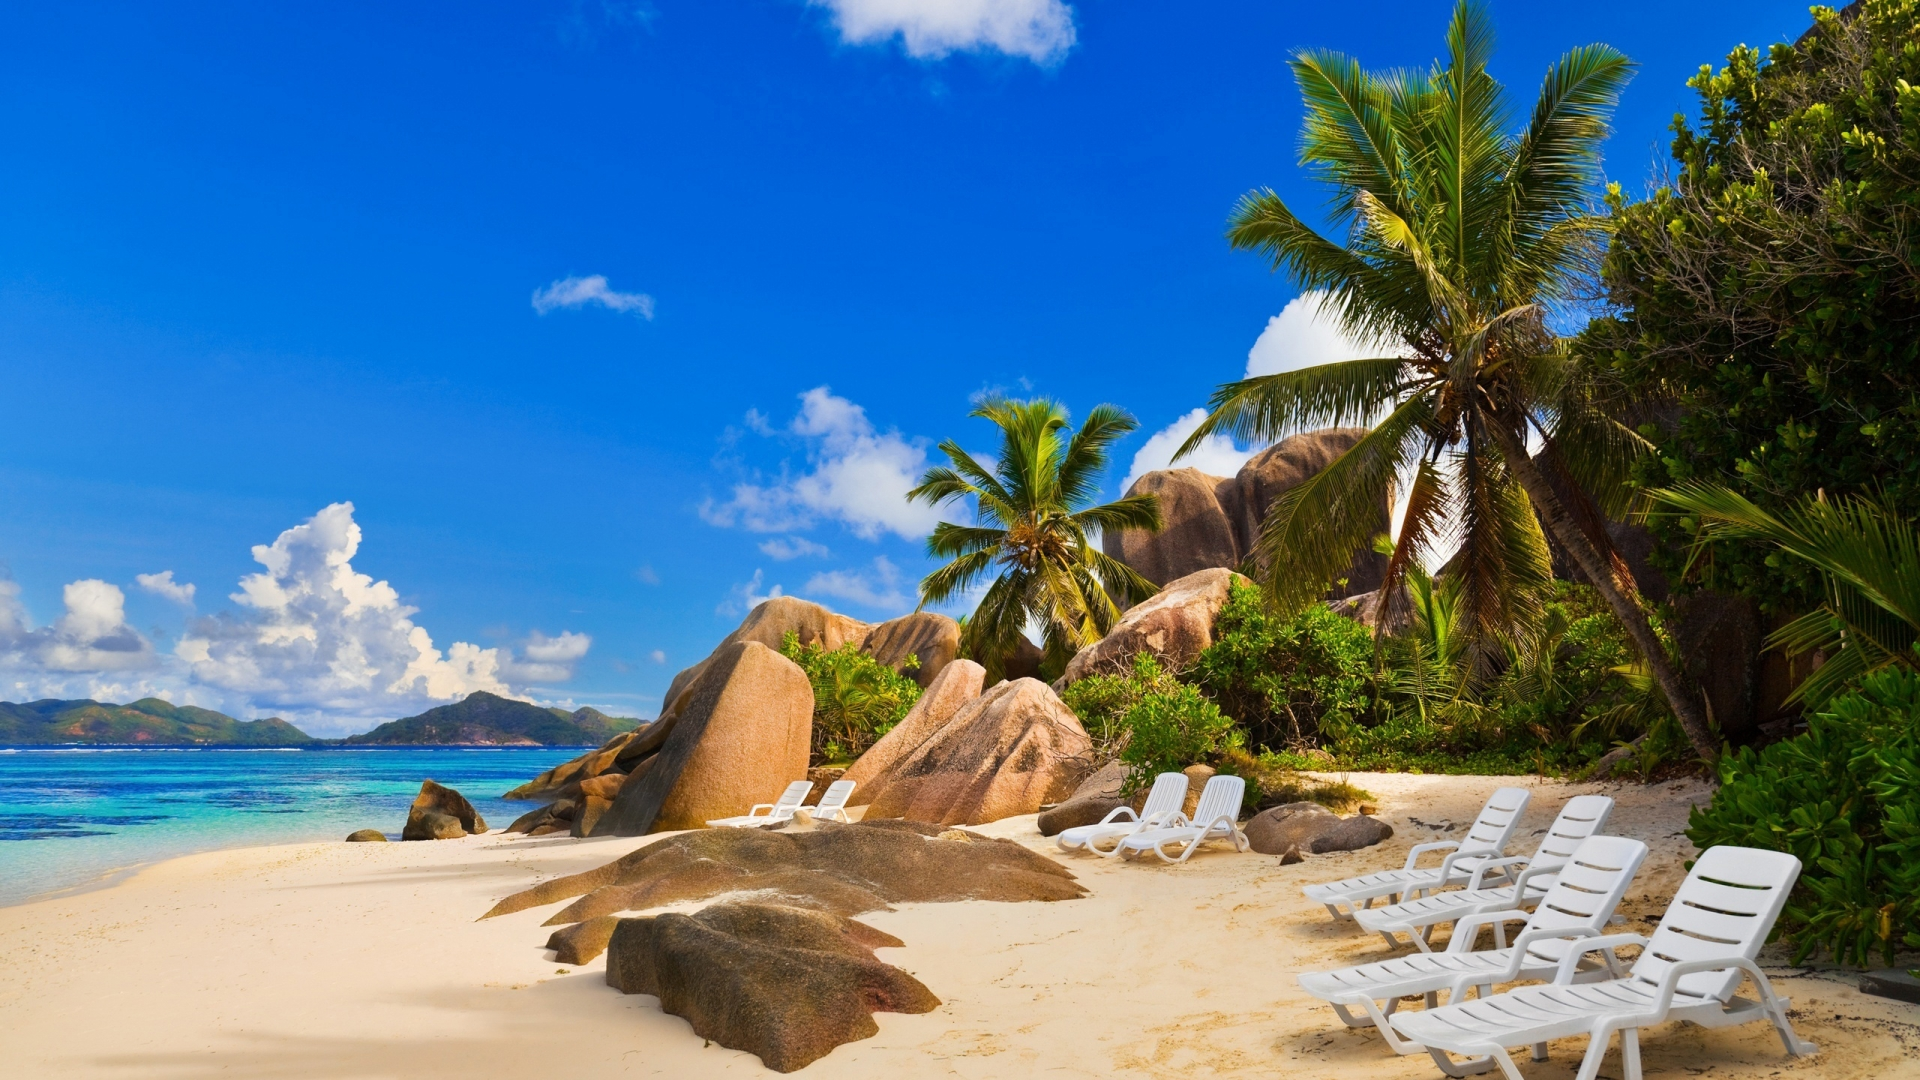 Exotic Sea Beach Wallpaper HD Sea Beach HD Widescreen 1920x1080